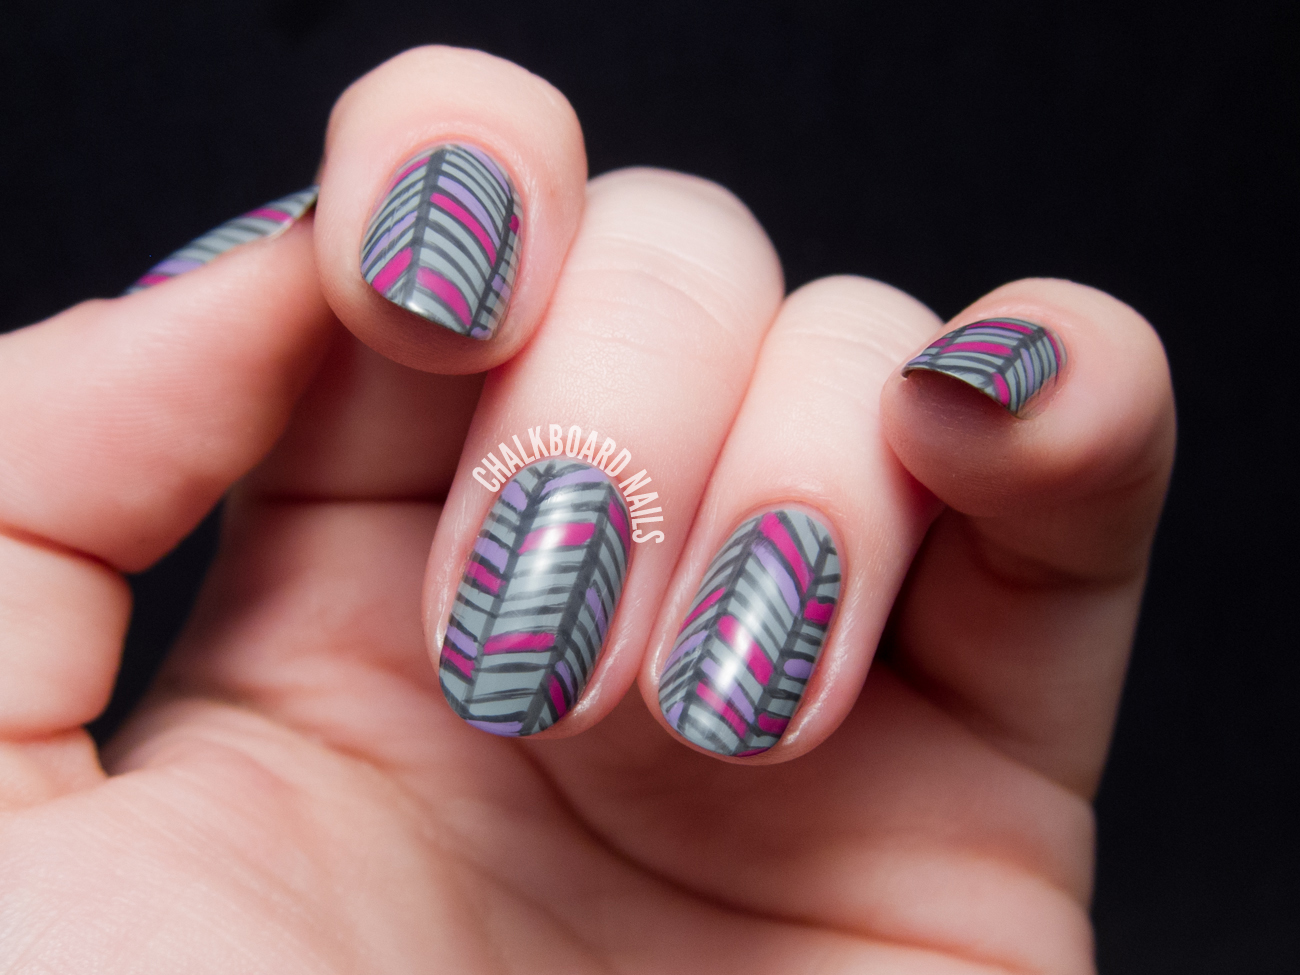 Grey Herringbone Nail Art by @chalkboardnails